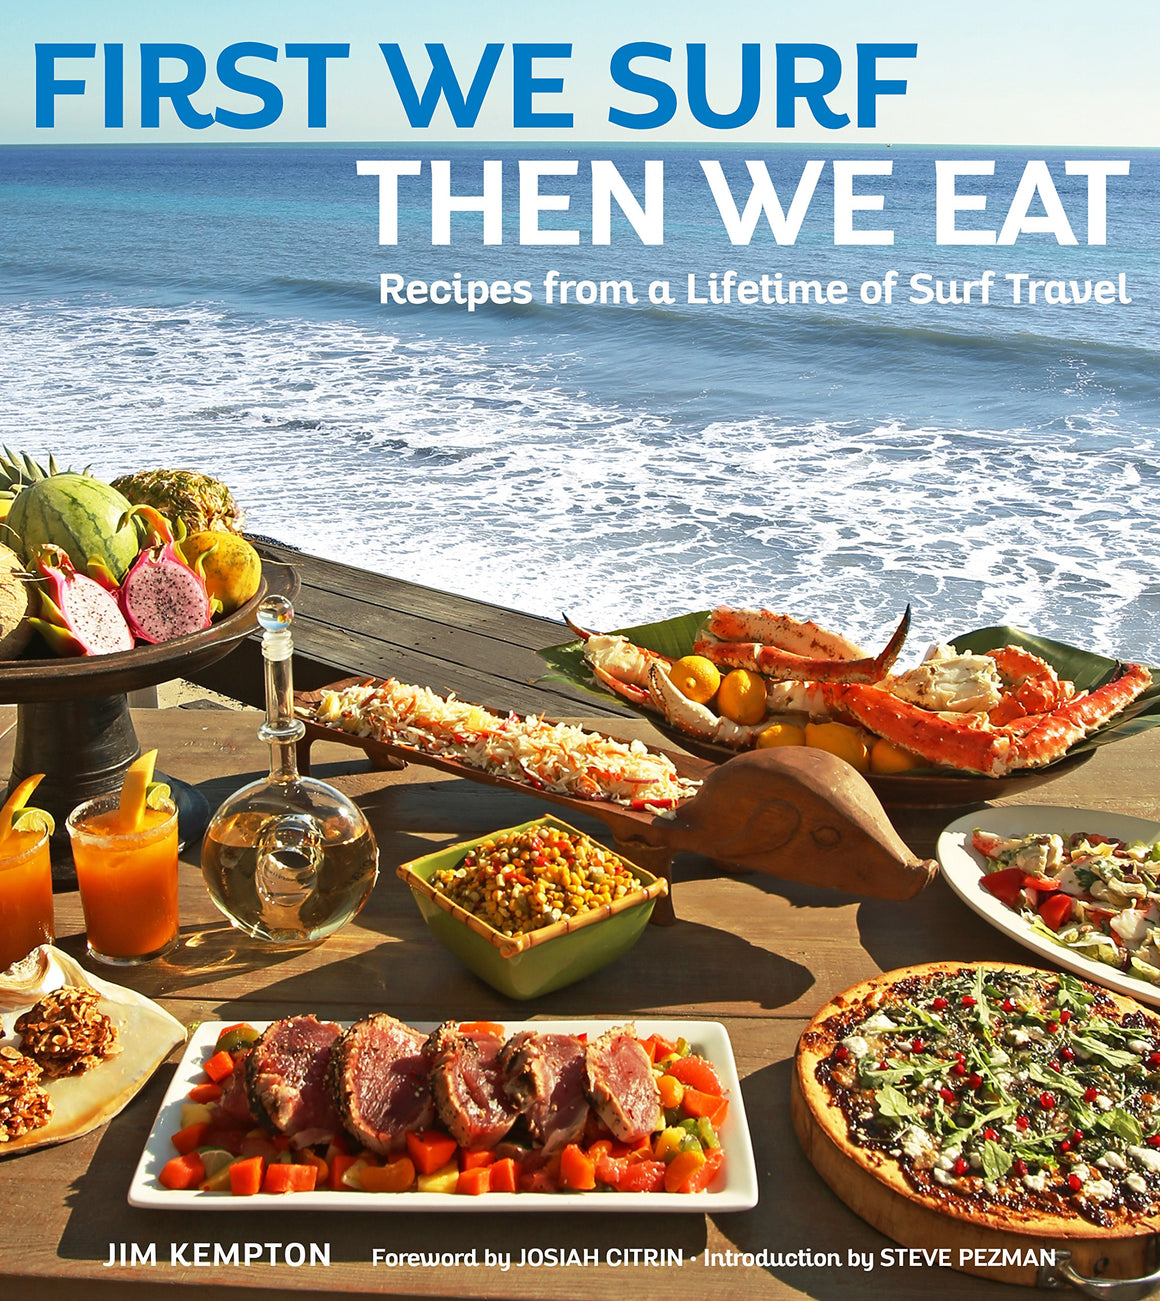 Jim Kempton. First We Surf, Then We Eat: Recipes From a Lifetime of Surf Travel